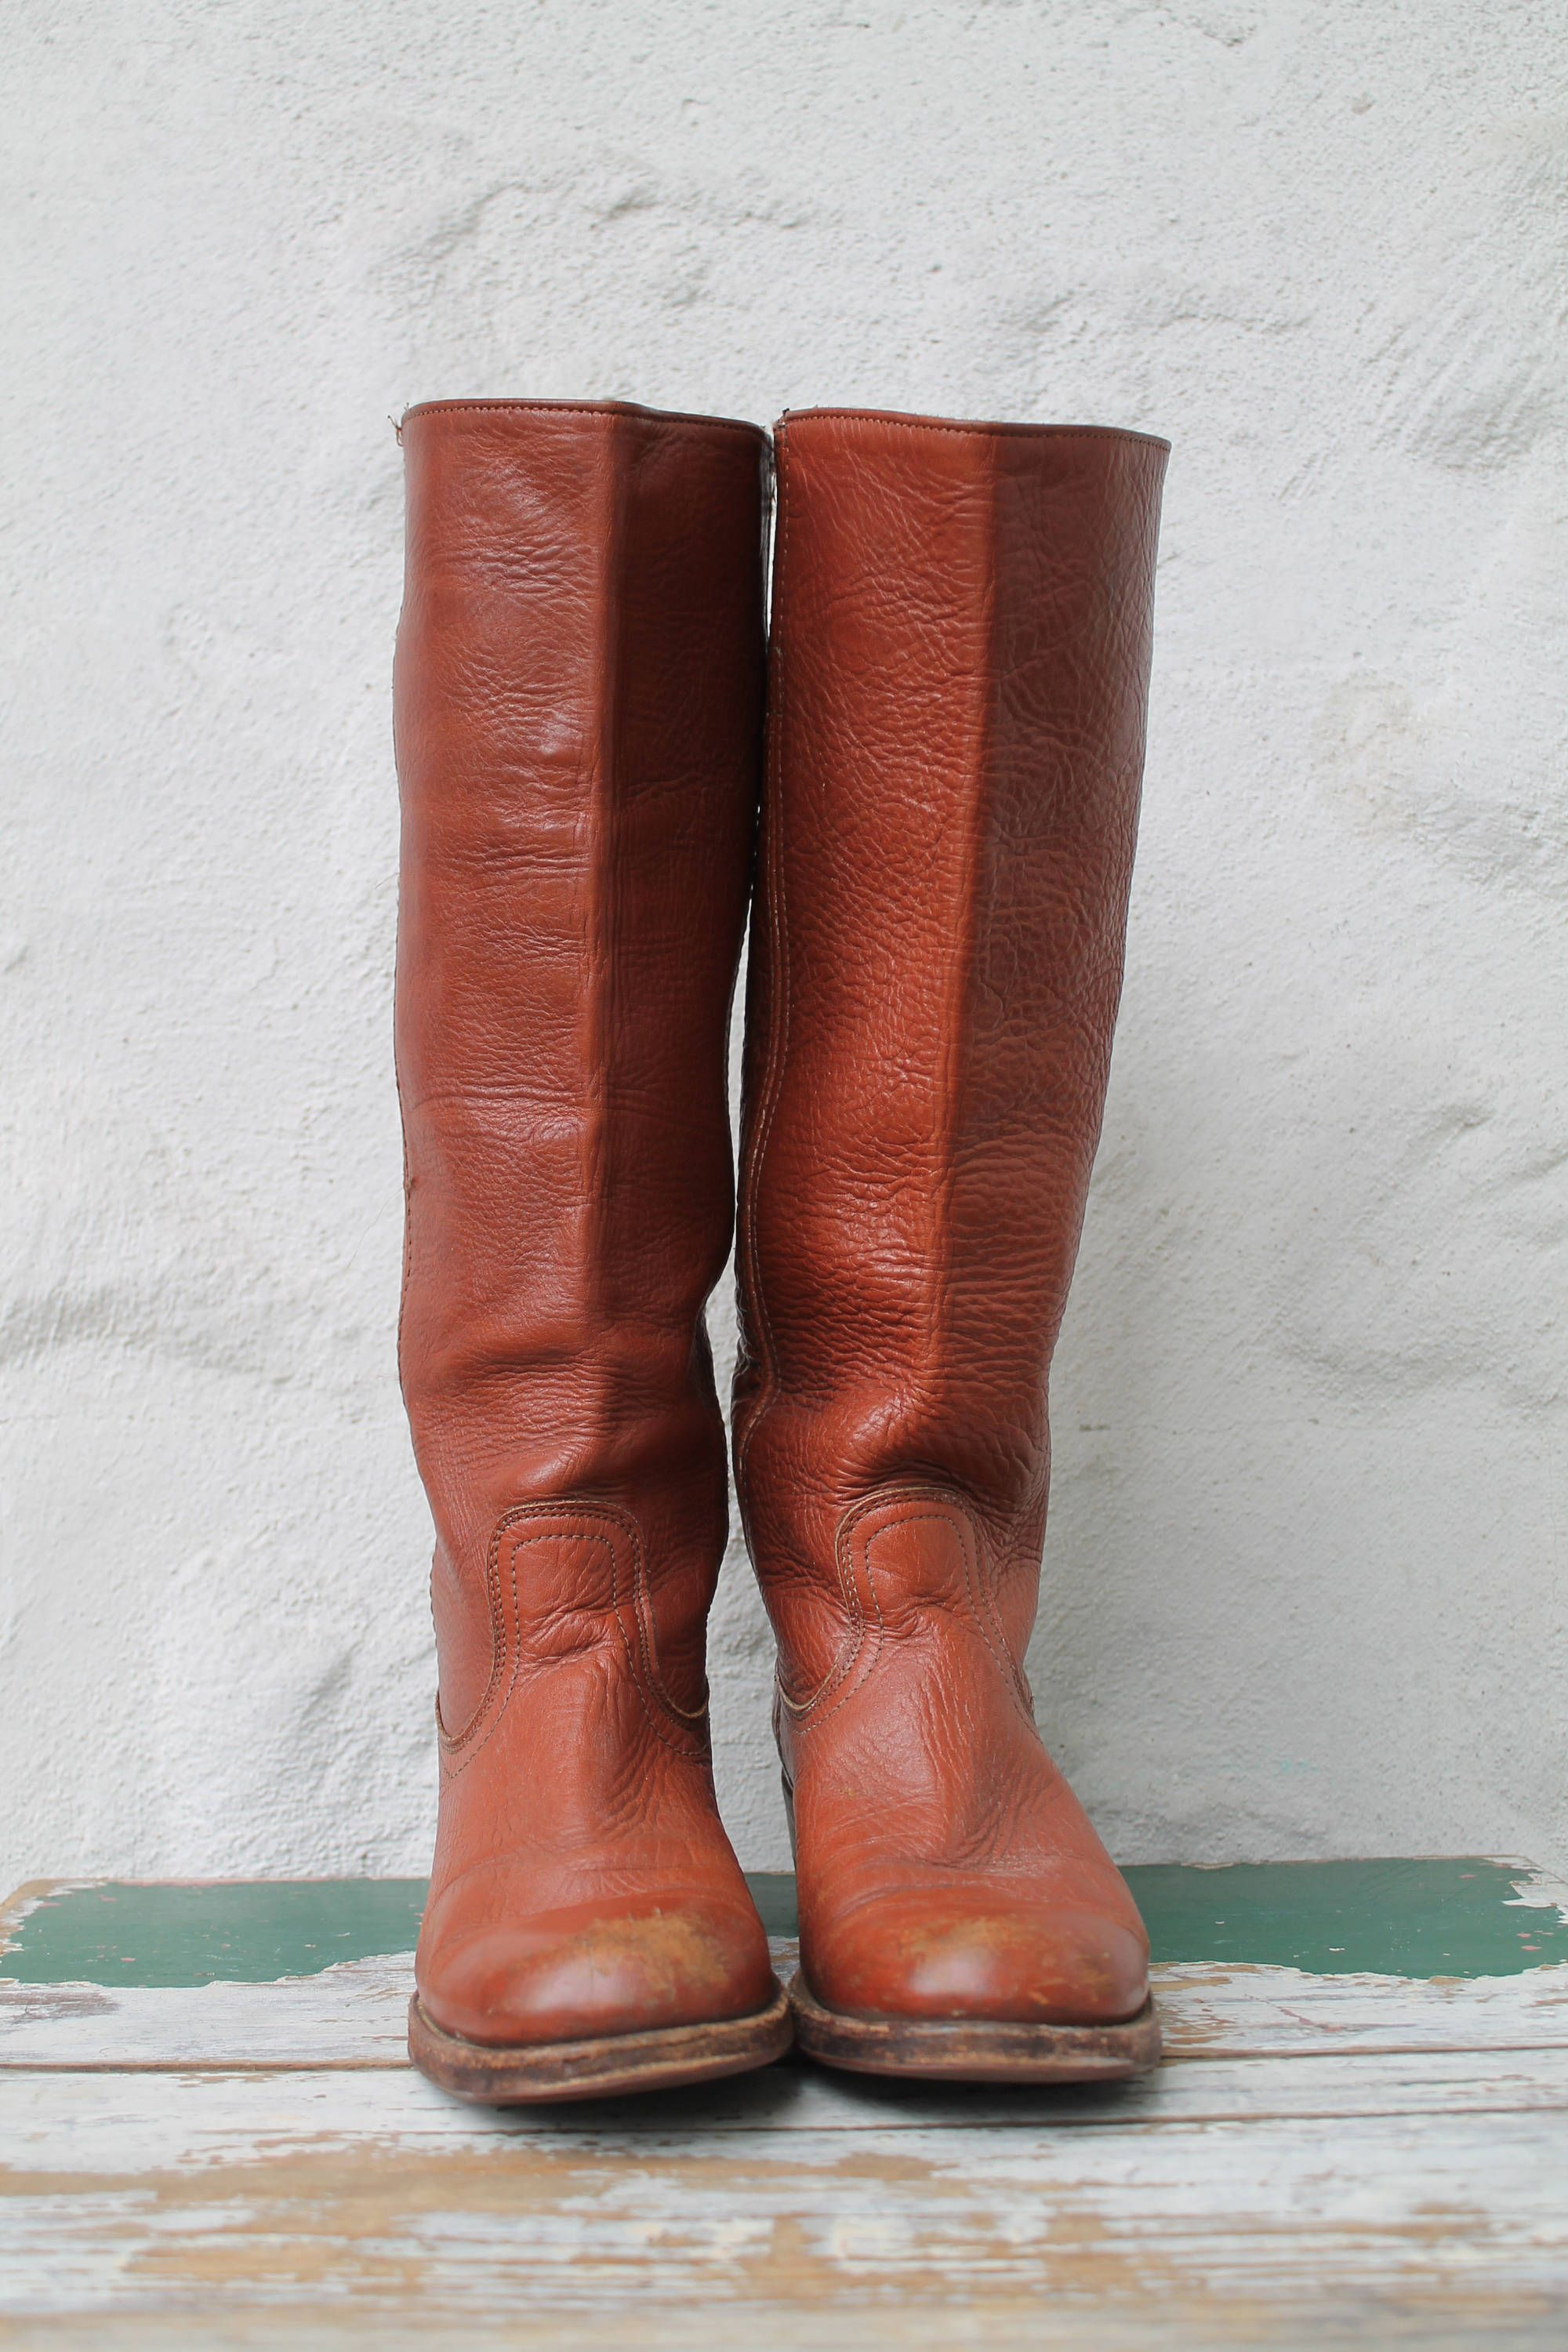 76d101680914 Frye Boots Tall Leather Boots Campus Boots Womens 6.5 Campus Boots Vintage Frye  Boots